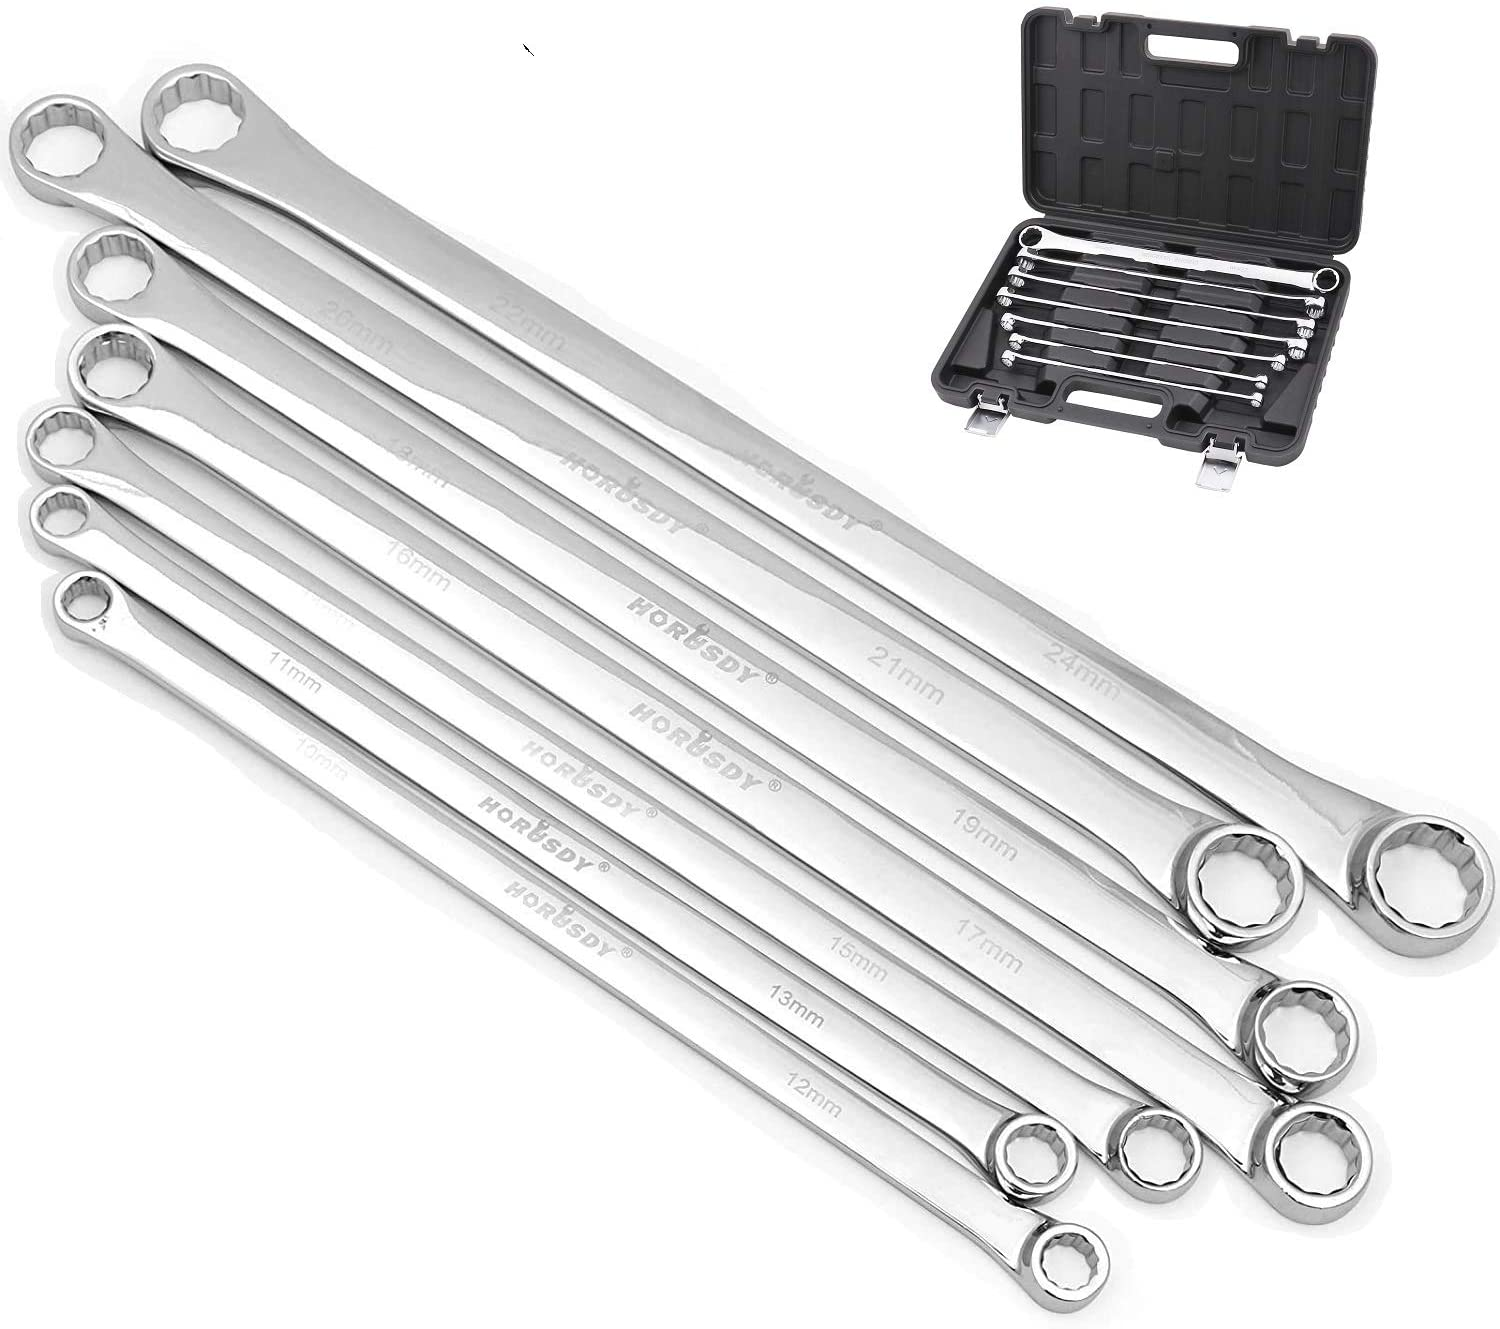 shipfree HORUSDY 7-Piece Extra Long Fashion Double Box Set End CR-V Less Wrench